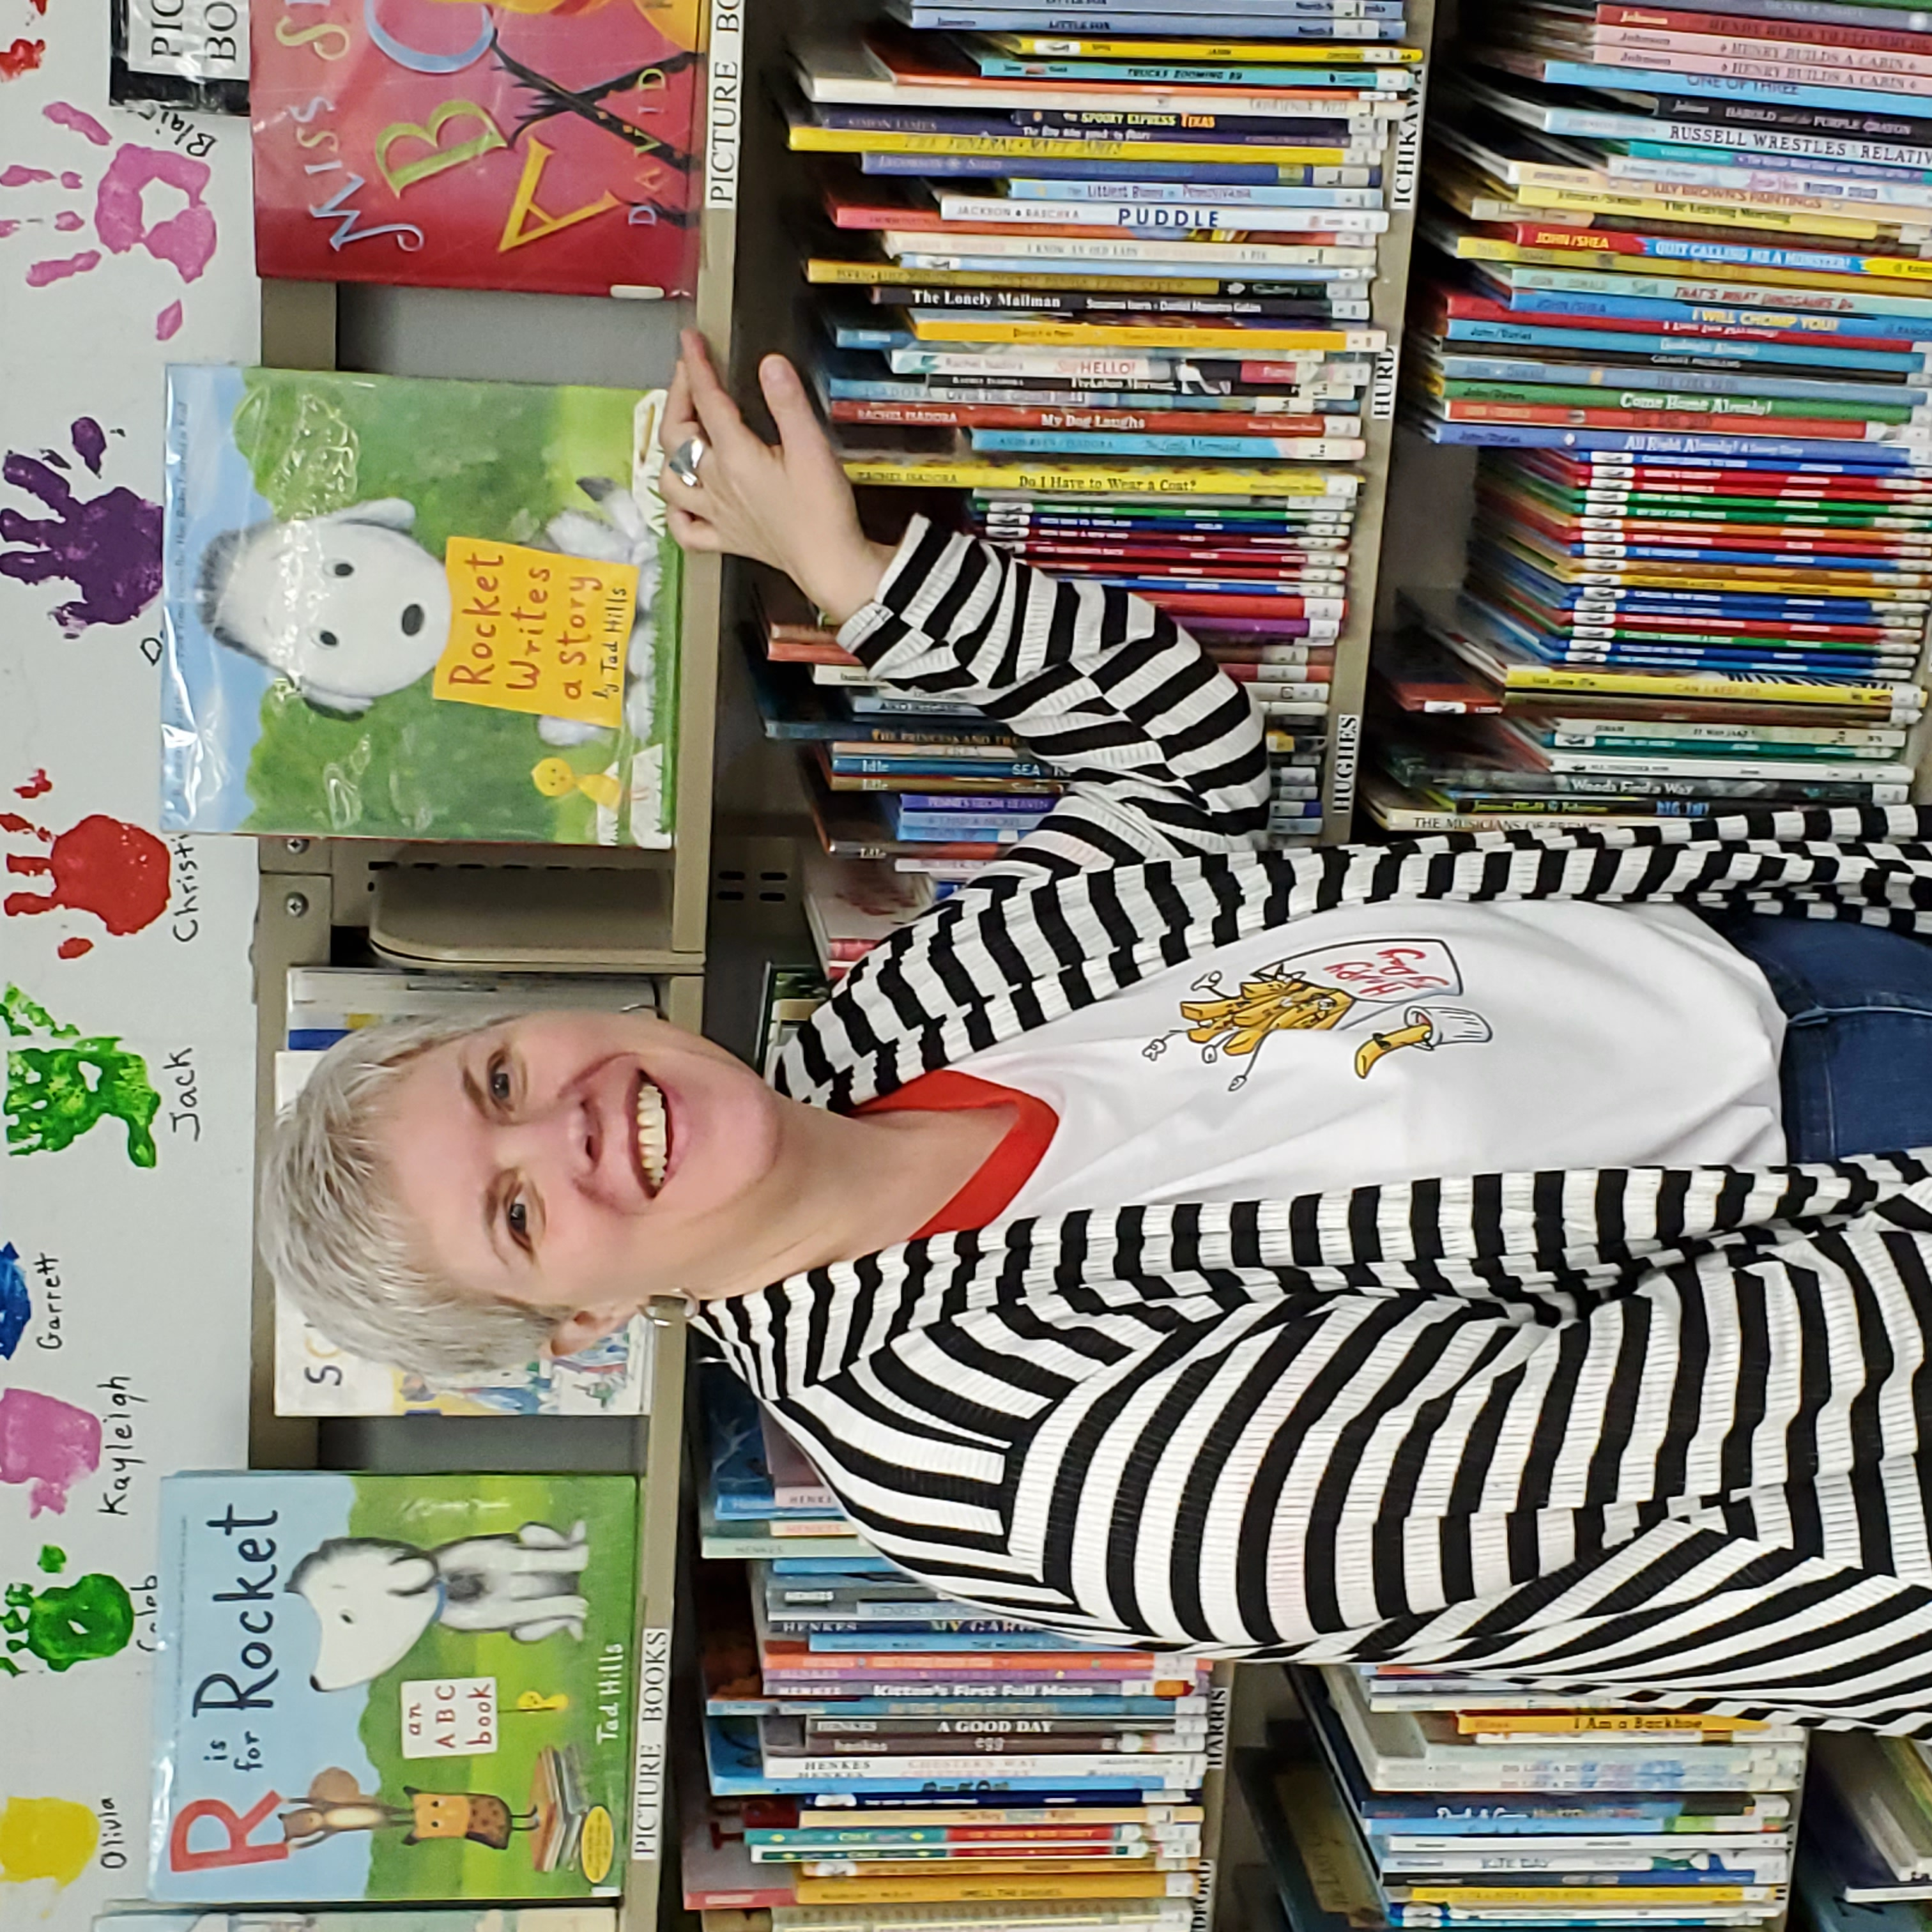 Jennifer Johnson-Spence standing in front of a shelf of children's books in her library.